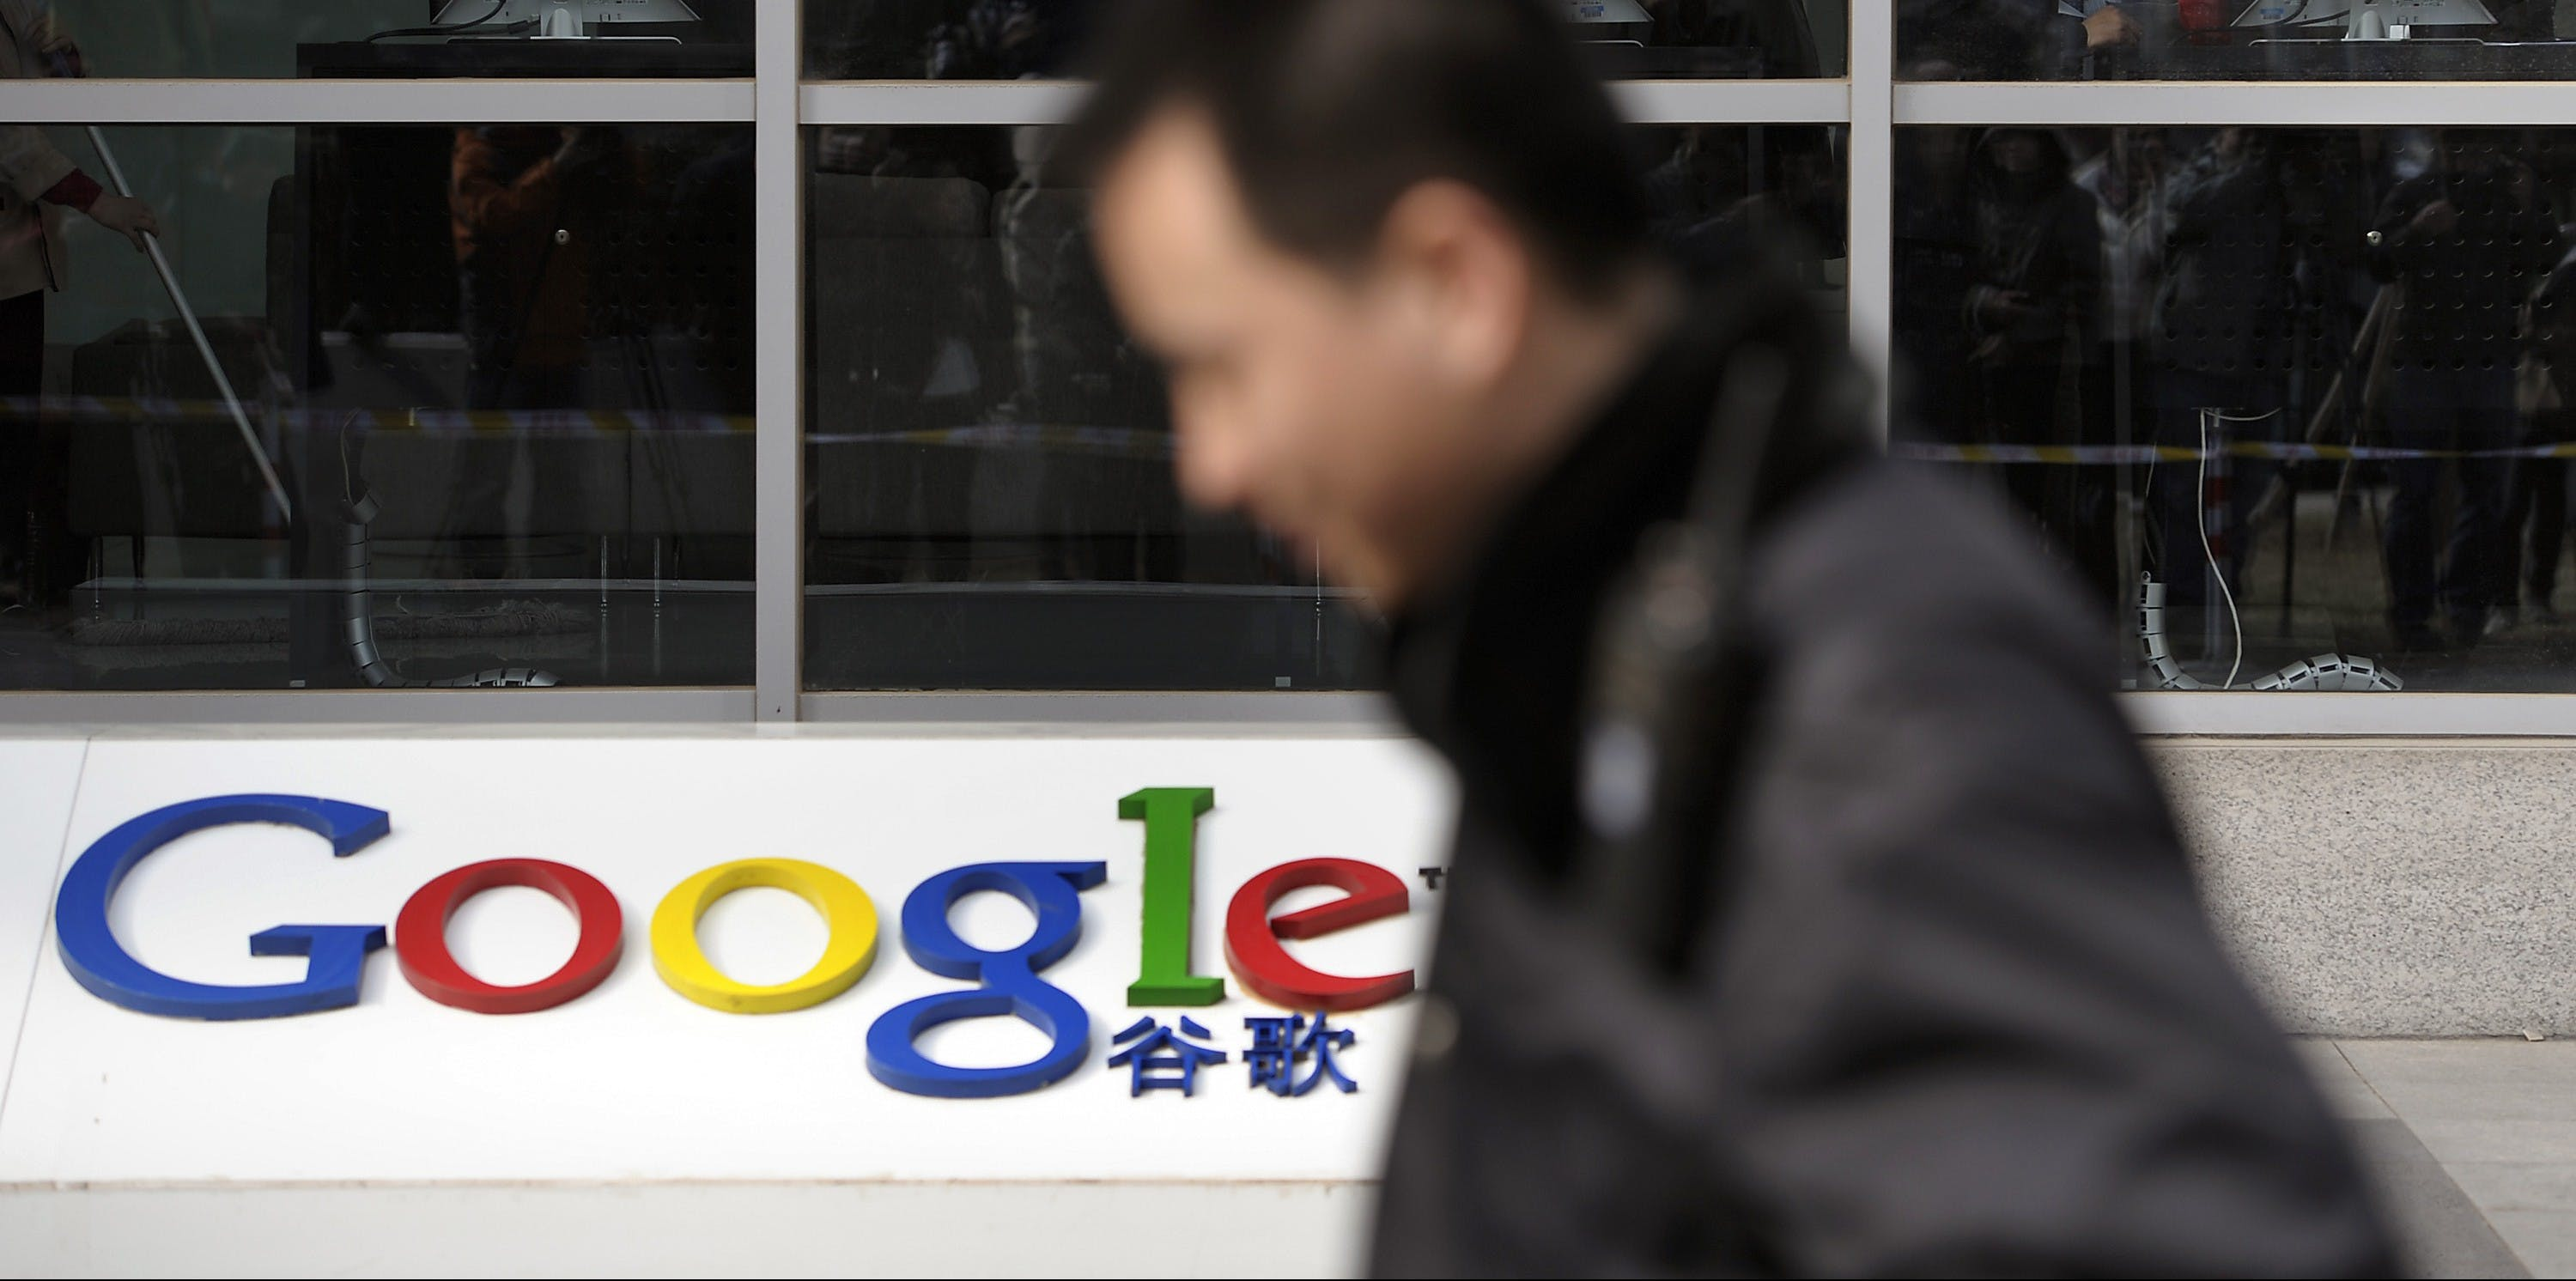 A security guard walks past while foreign visitors are seen inside the Google China headquarters in Beijing Tuesday, March 23, 2010. Google Inc. stopped censoring the Internet for China by shifting its search engine off the mainland Monday but said it will maintain other operations in the country. The maneuver attempts to balance Google's disdain for China's Internet rules with the company's desire to profit from an explosively growing market. (AP Photo/Andy Wong)